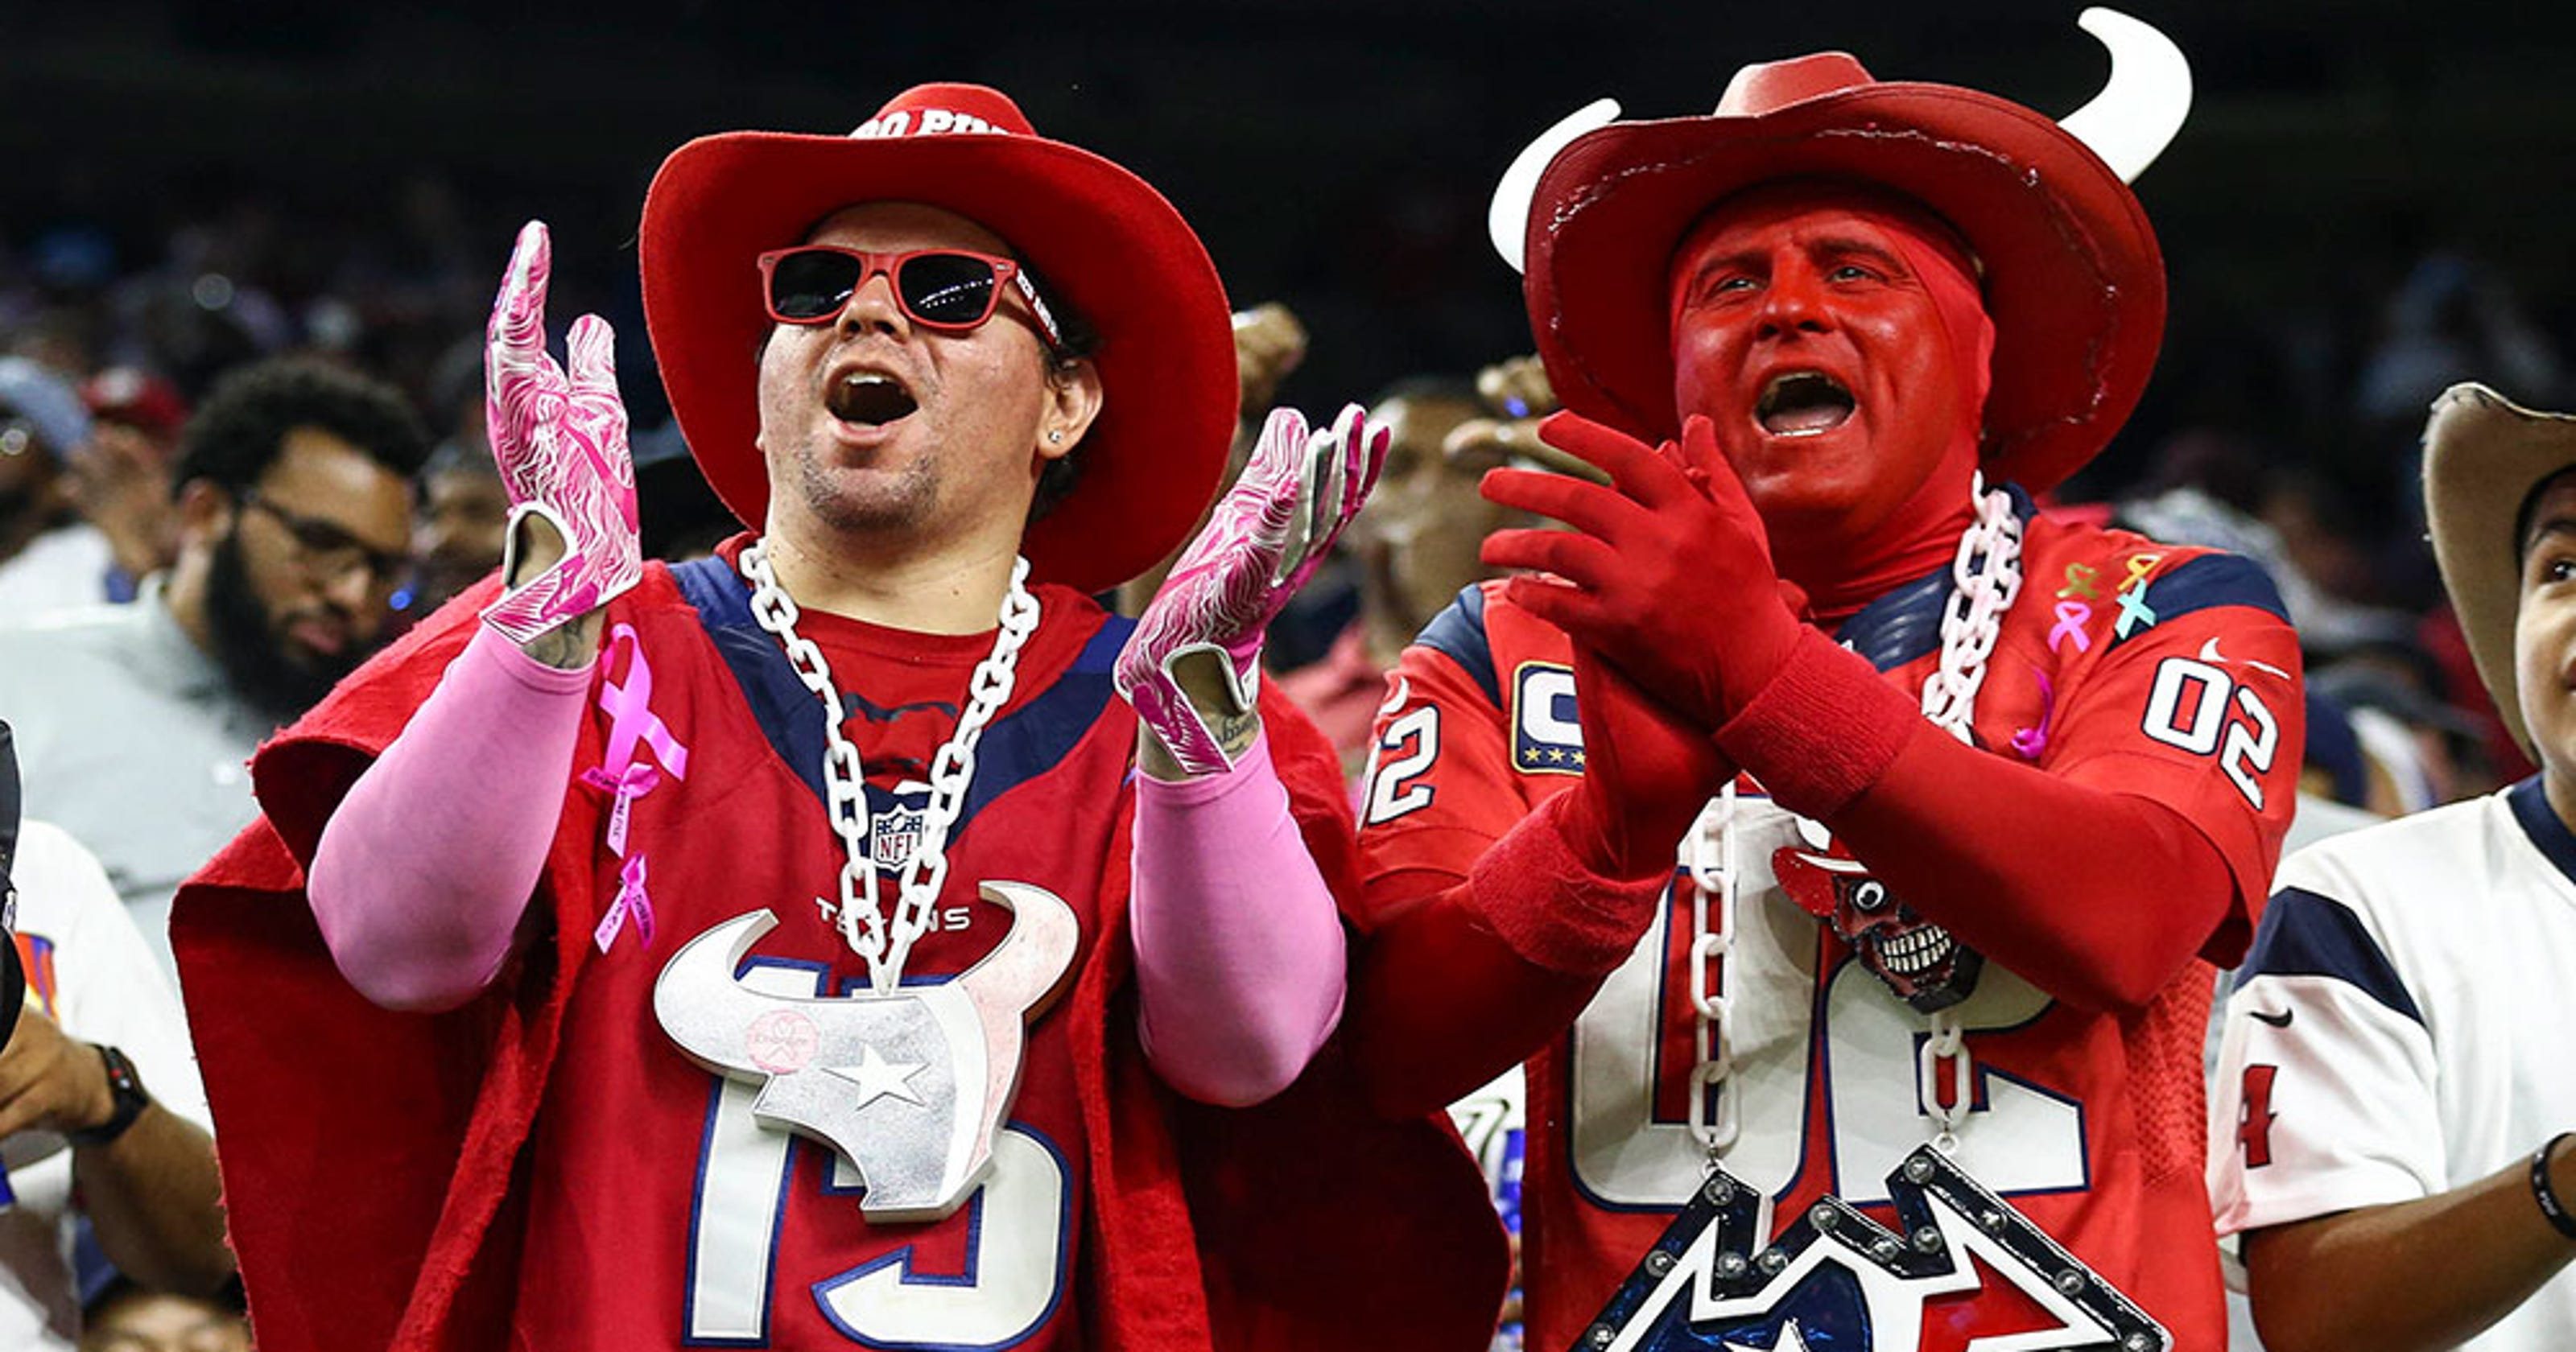 Which NFL team has the best fans? Vote!